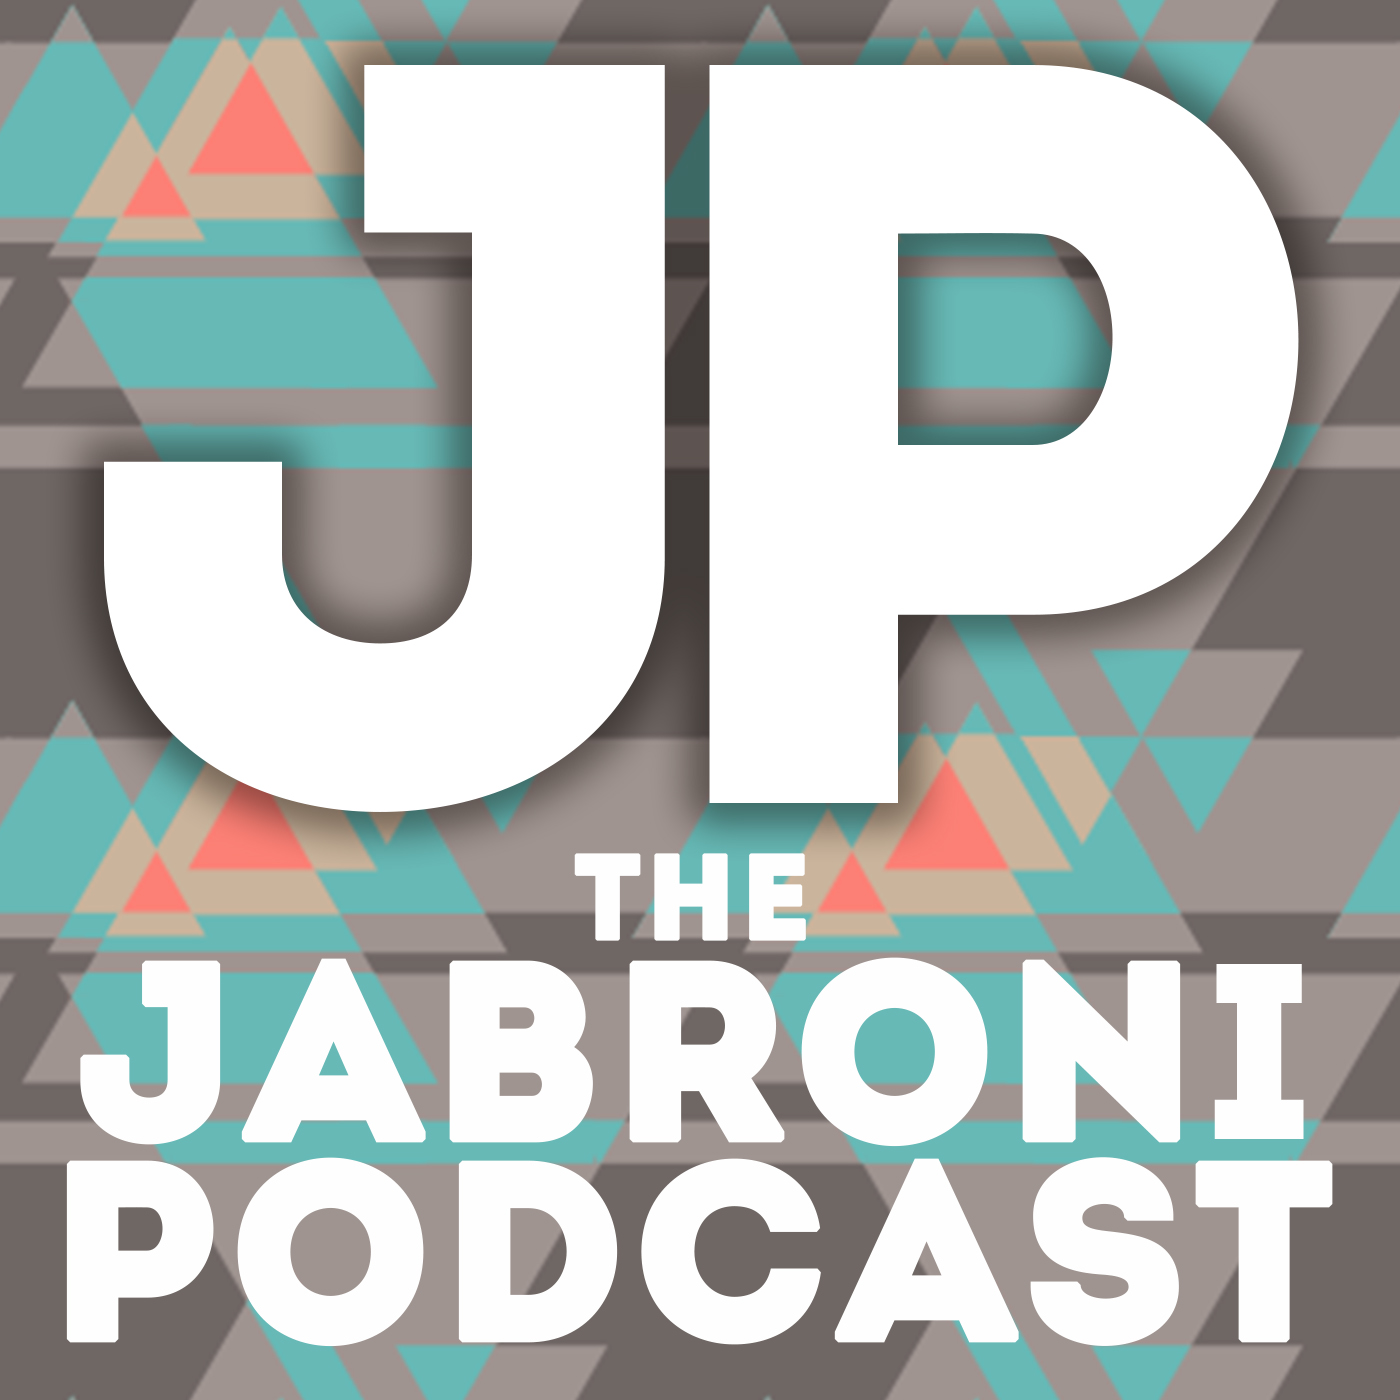 Jabroni Podcast